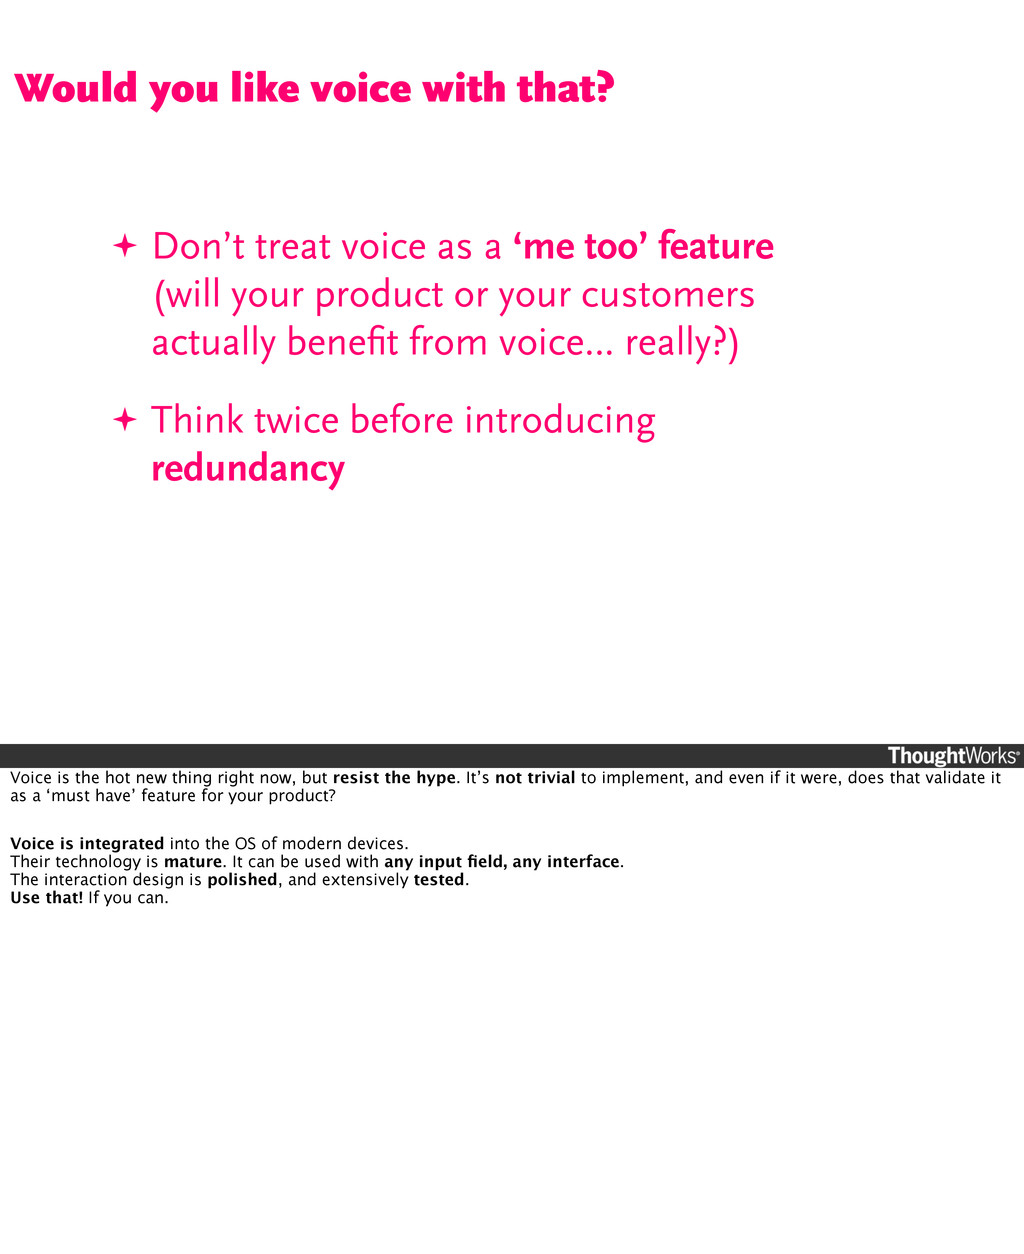 ✦ Don't treat voice as a 'me too' feature (will...